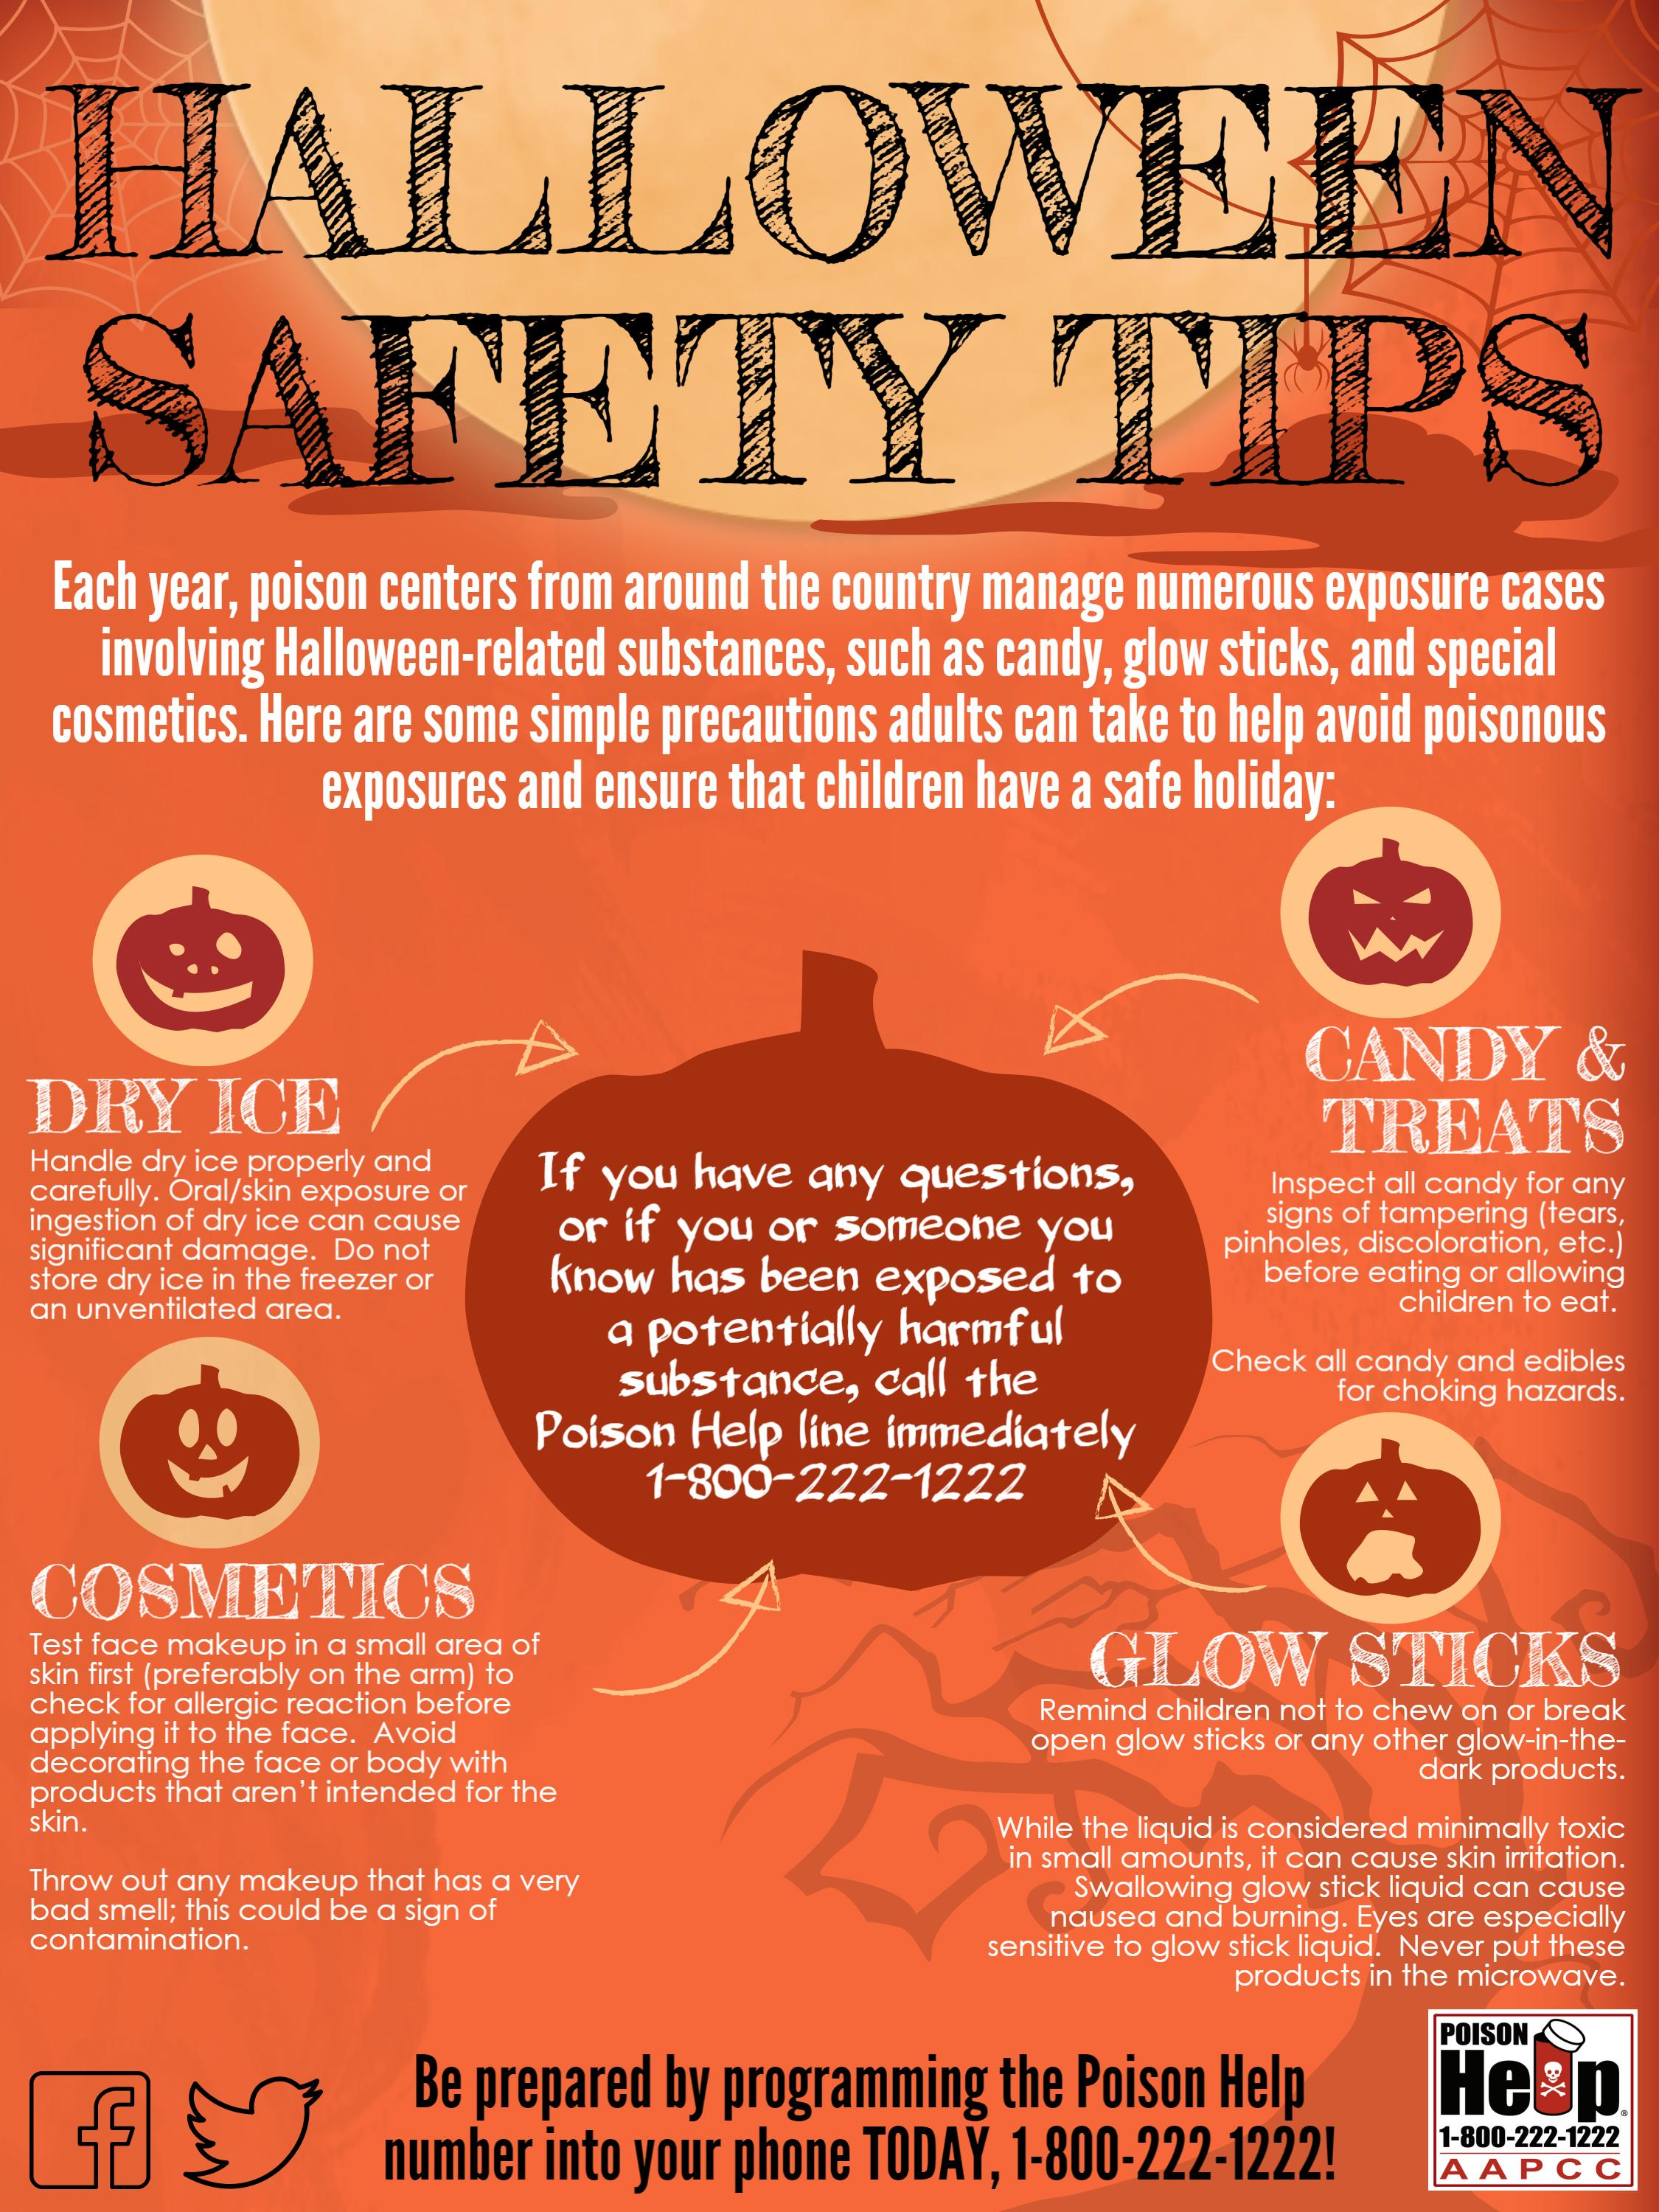 2015-AAPCC-Halloween-Safety-Tips-Infographic.jpeg